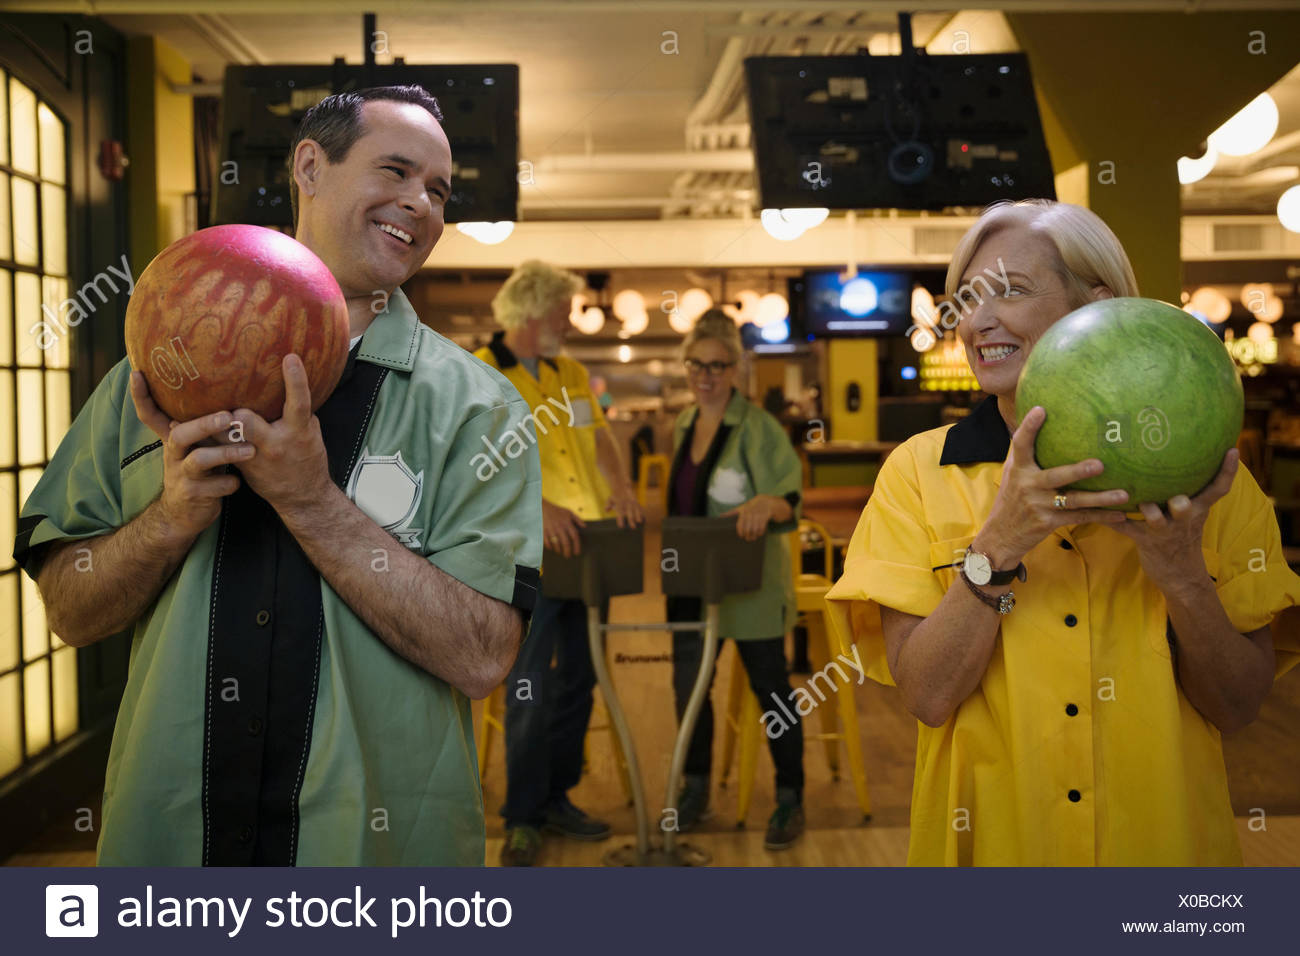 Smiling couple holding bowling balls - Stock Image